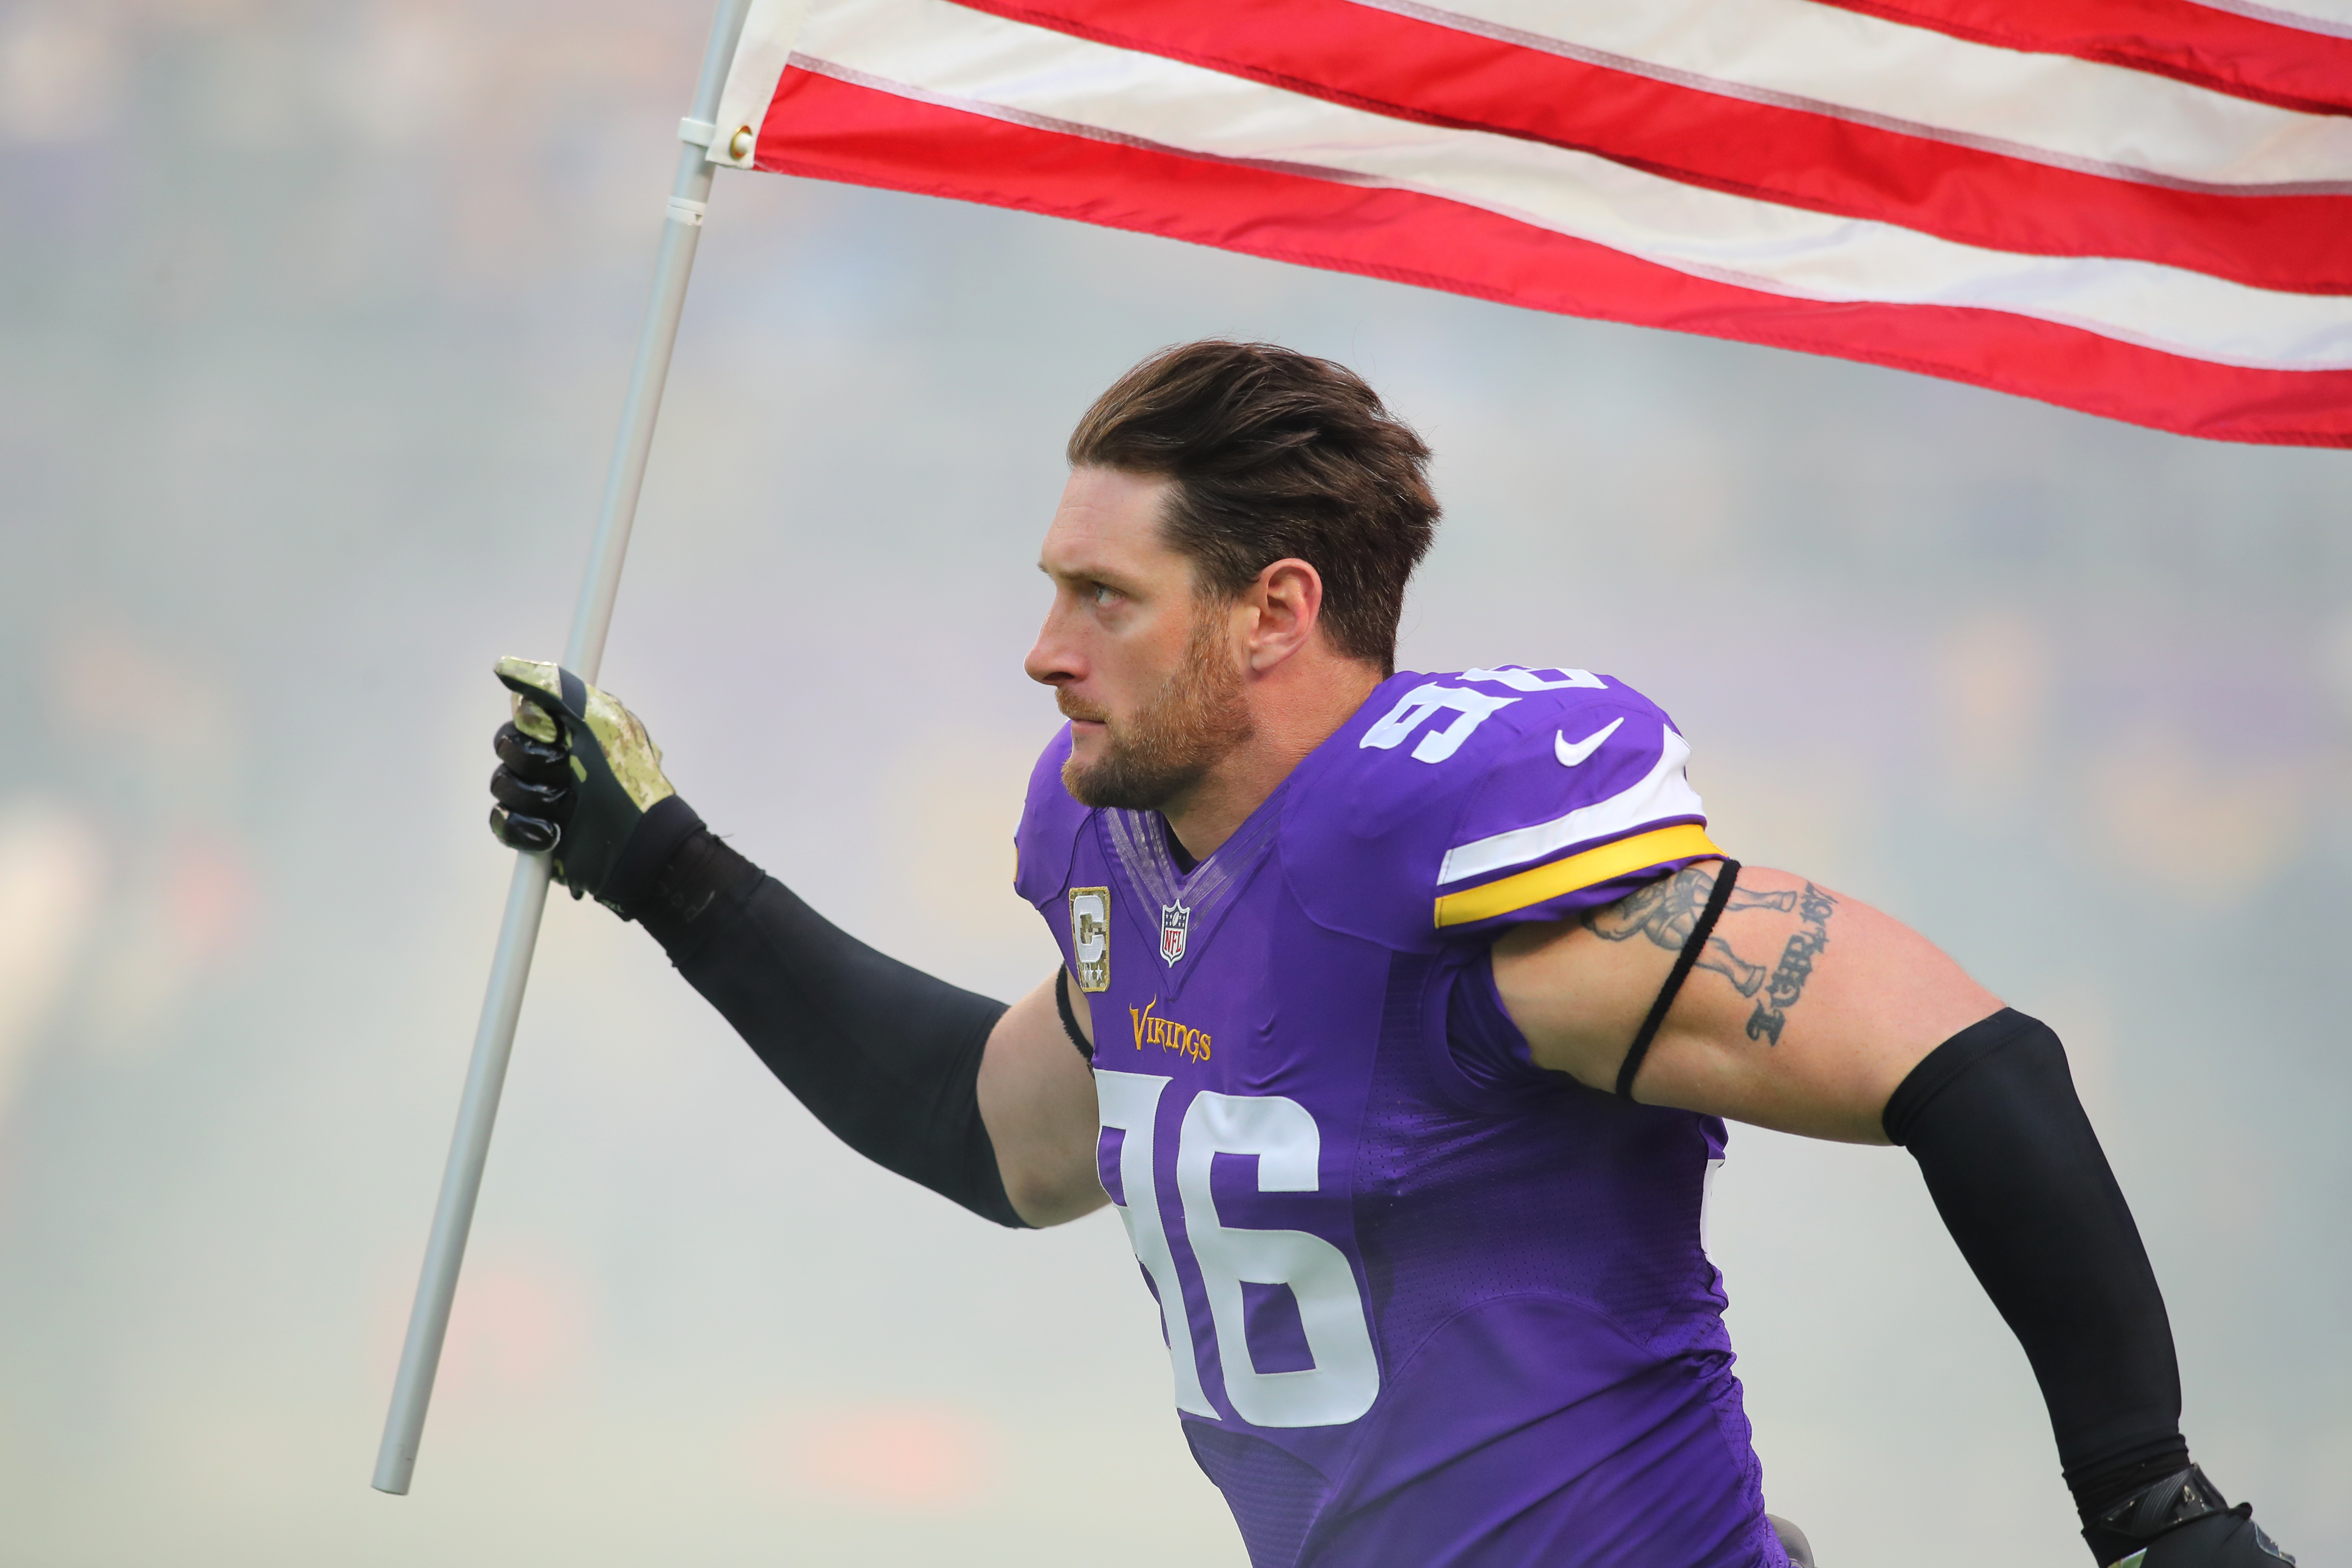 Minnesota Vikings: Brian Robison's legacy extends beyond the numbers